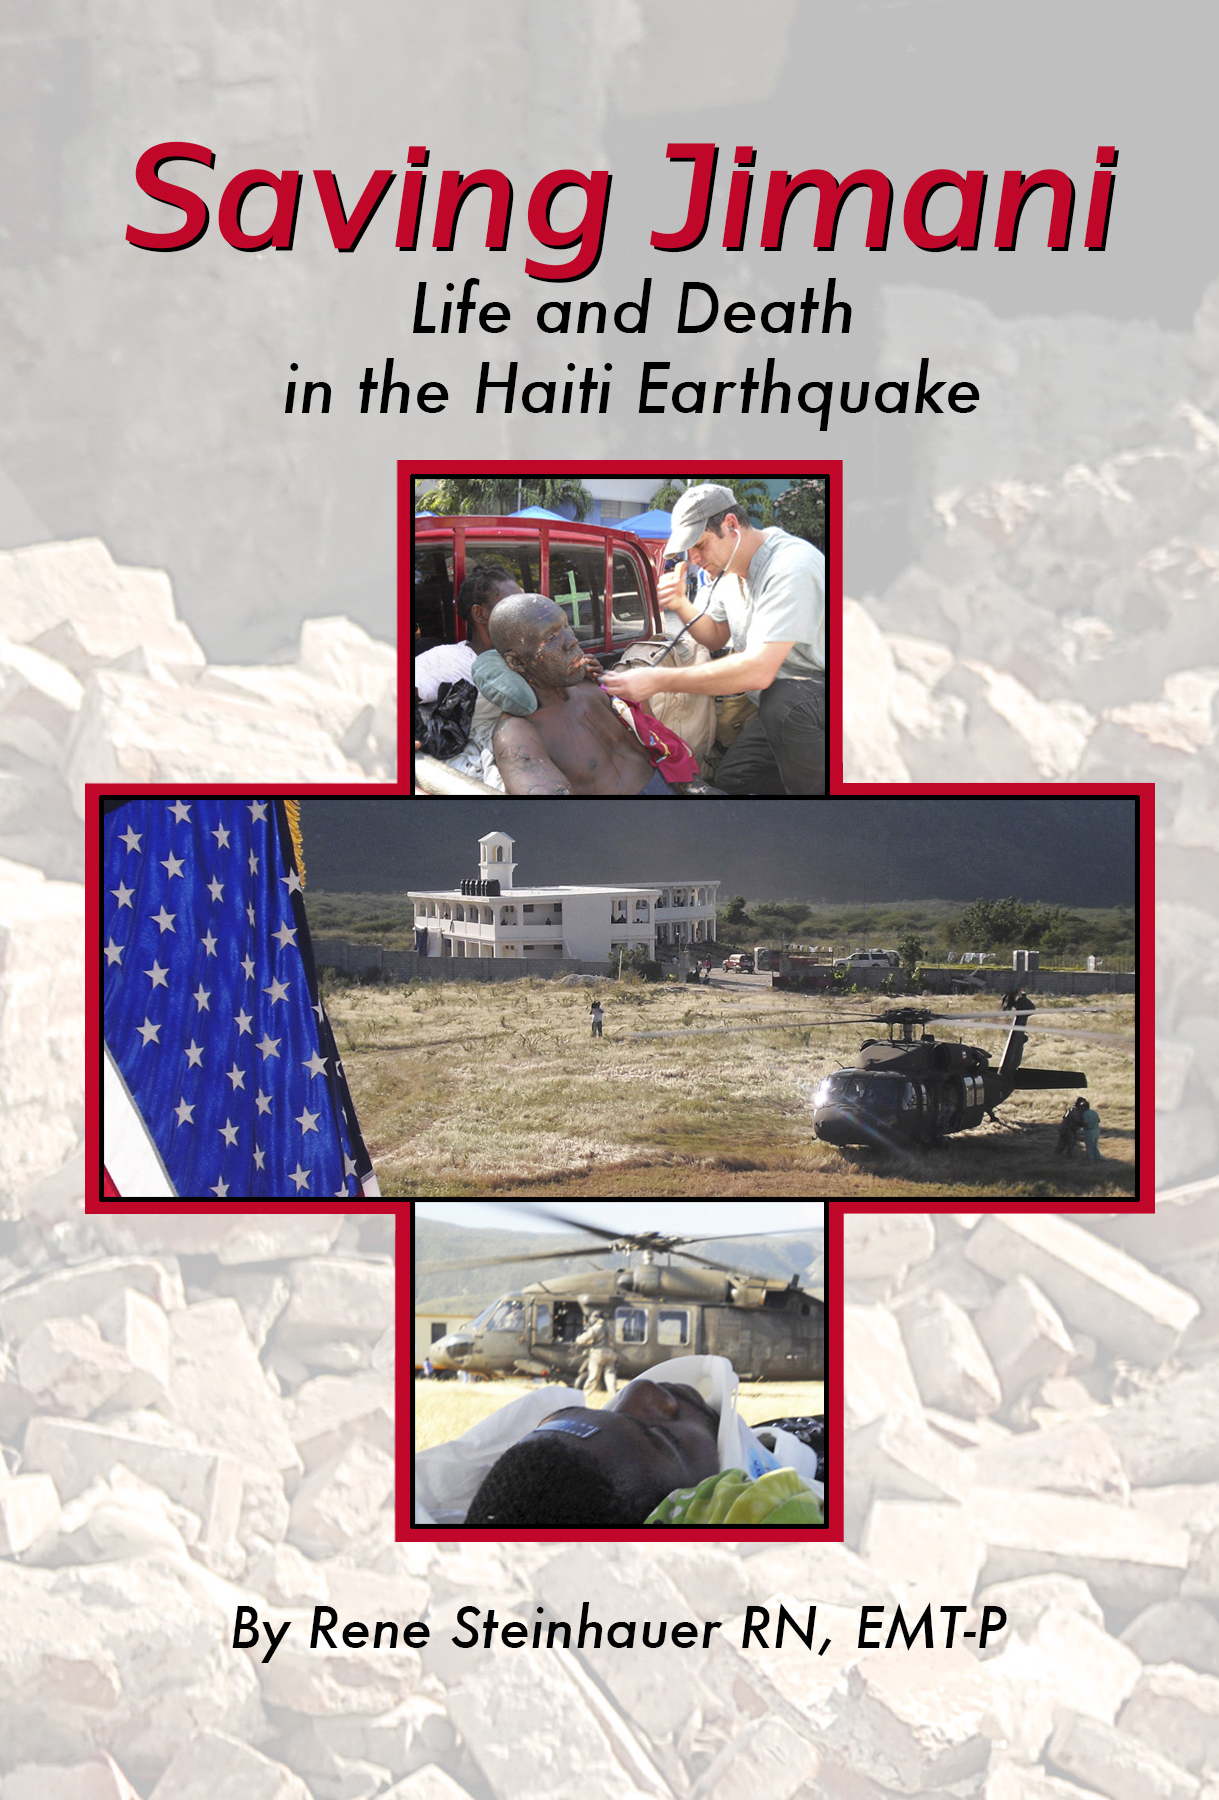 Saving Jimani: Life and Death in the Haiti Earthquake